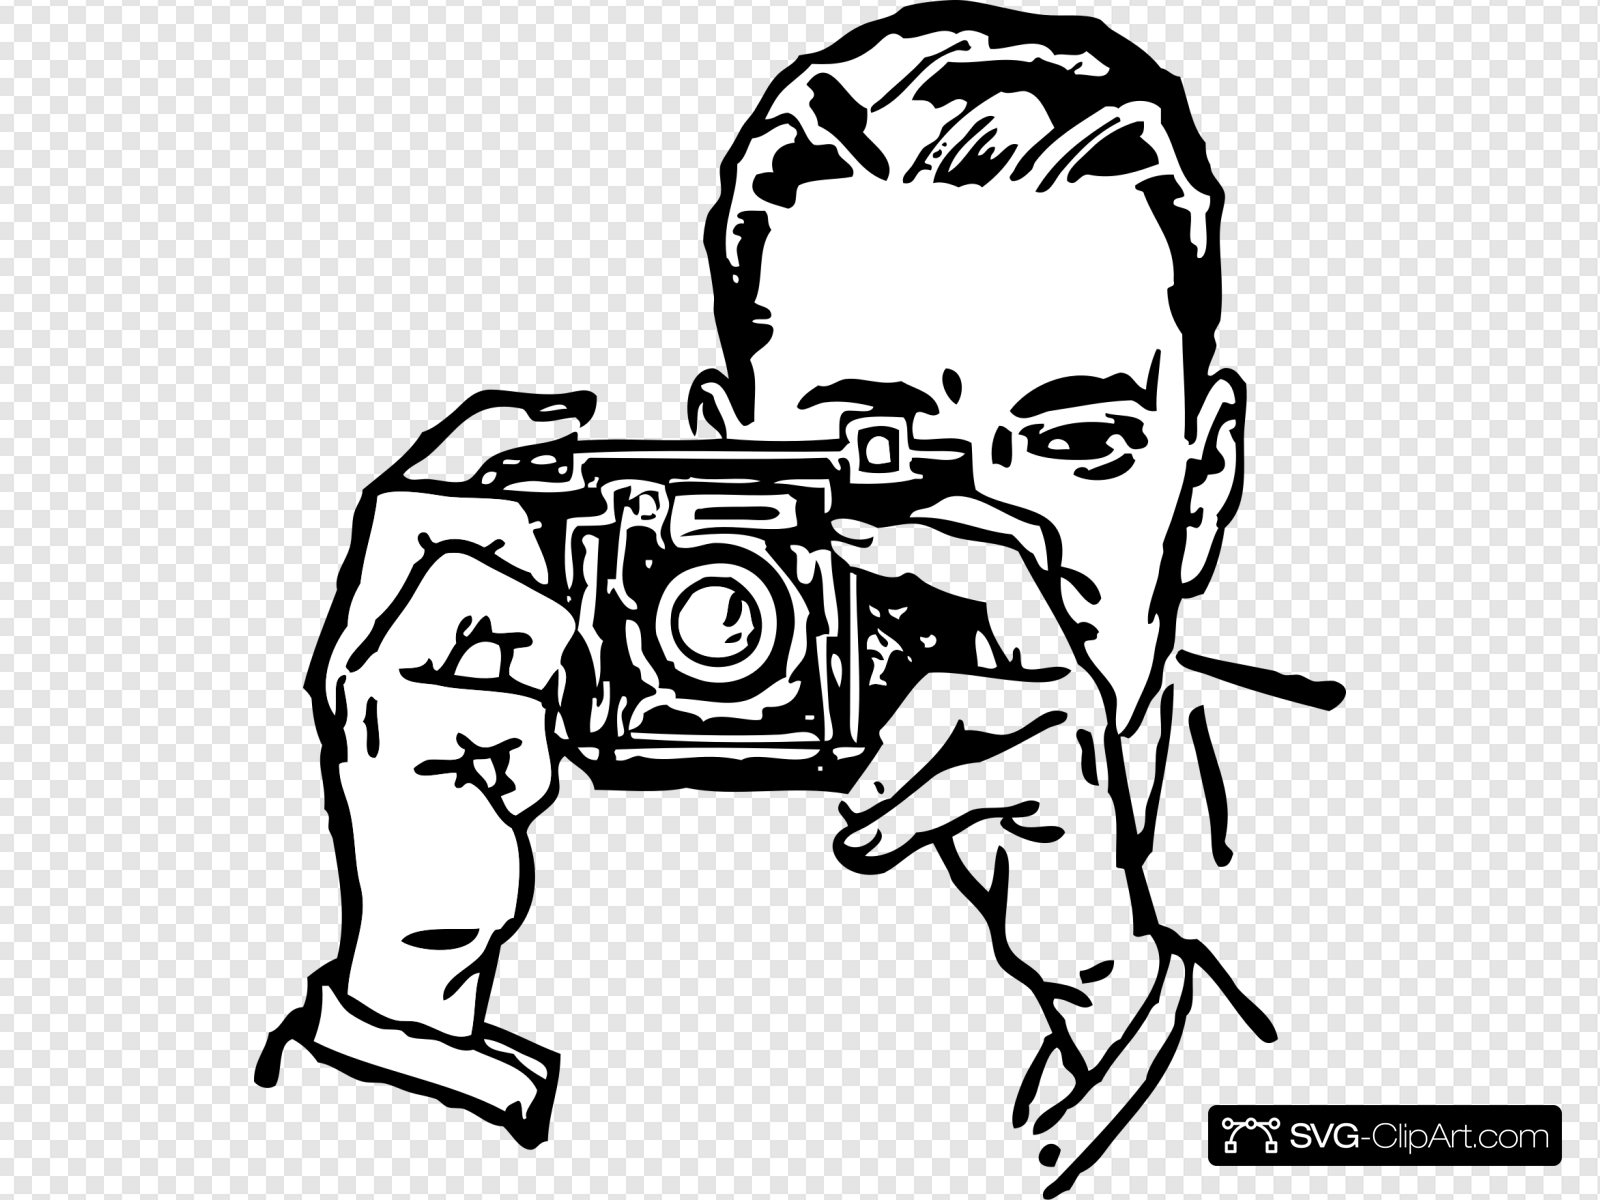 Man With A Camera Clip art, Icon and SVG.